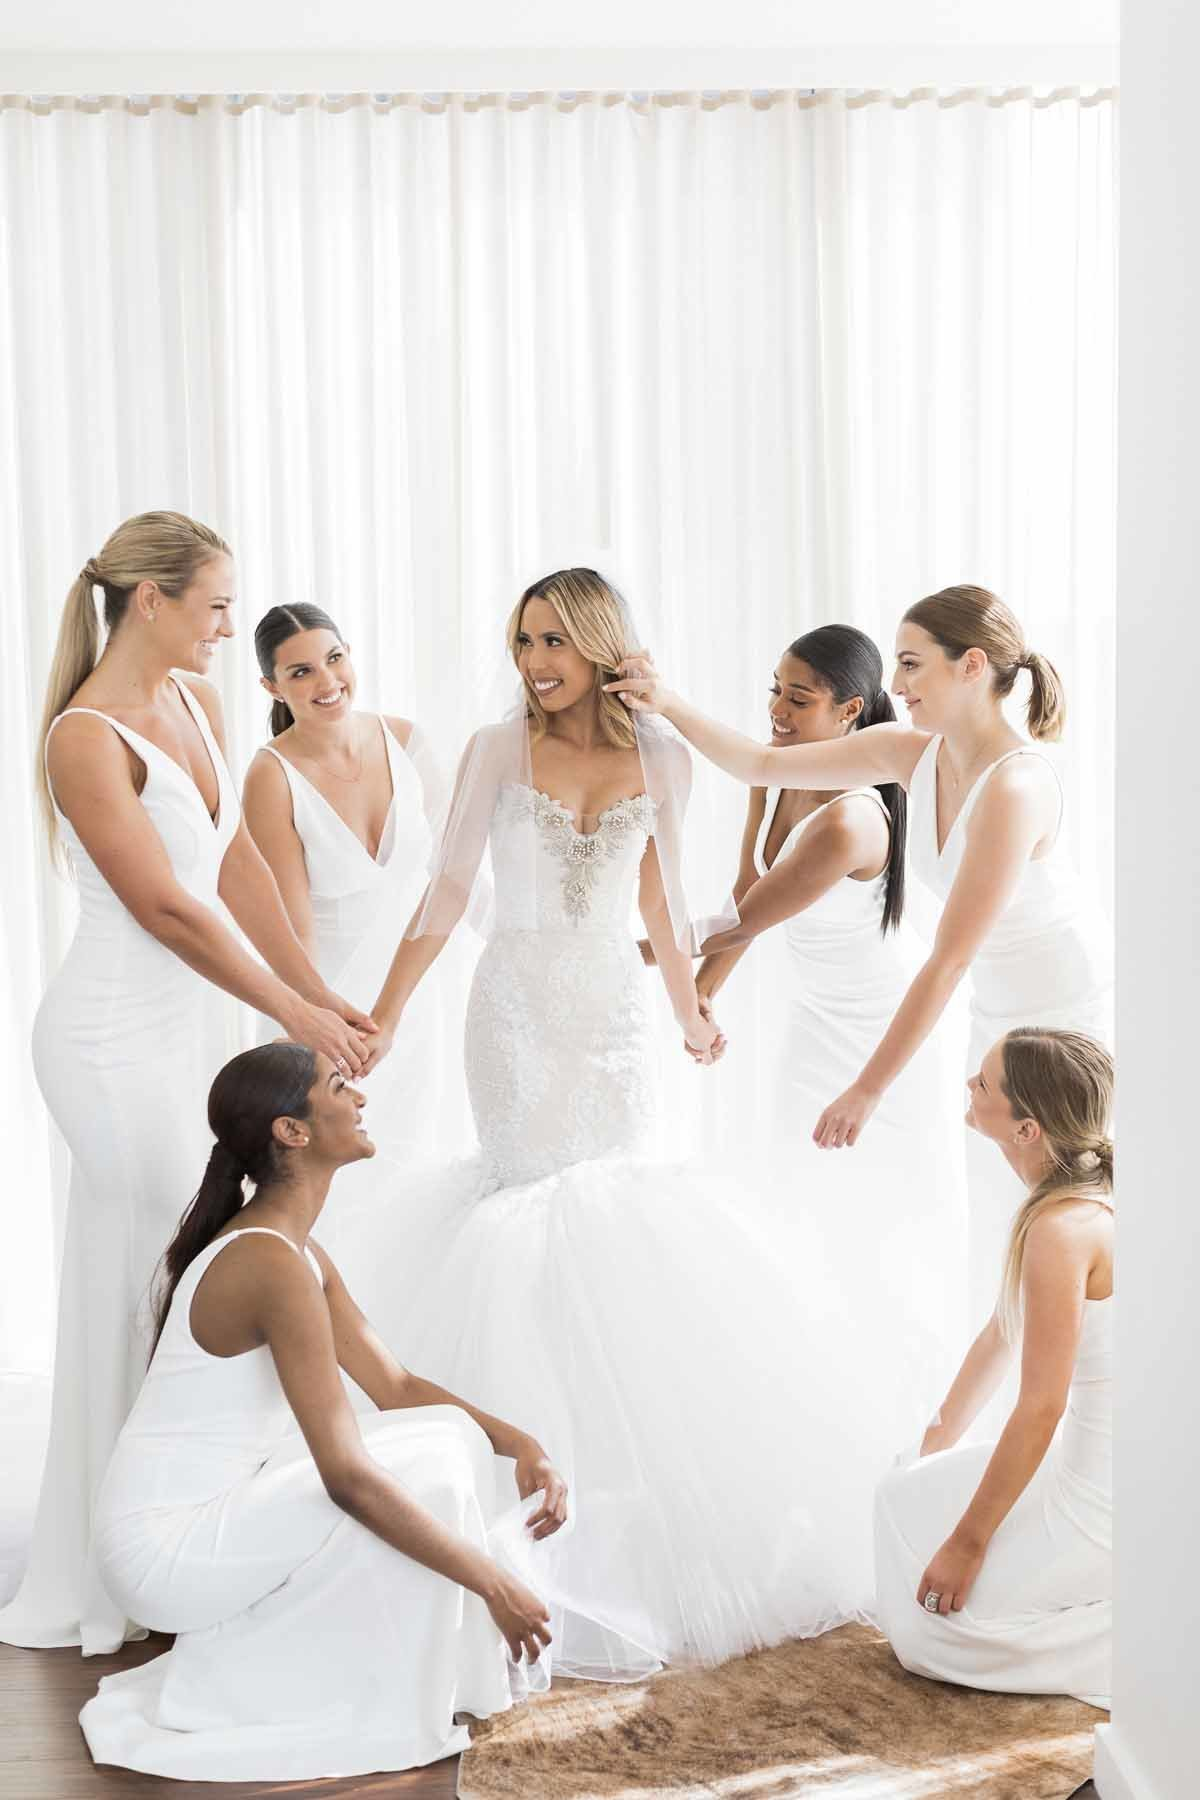 A beautiful and happy bride surrounded by her maids